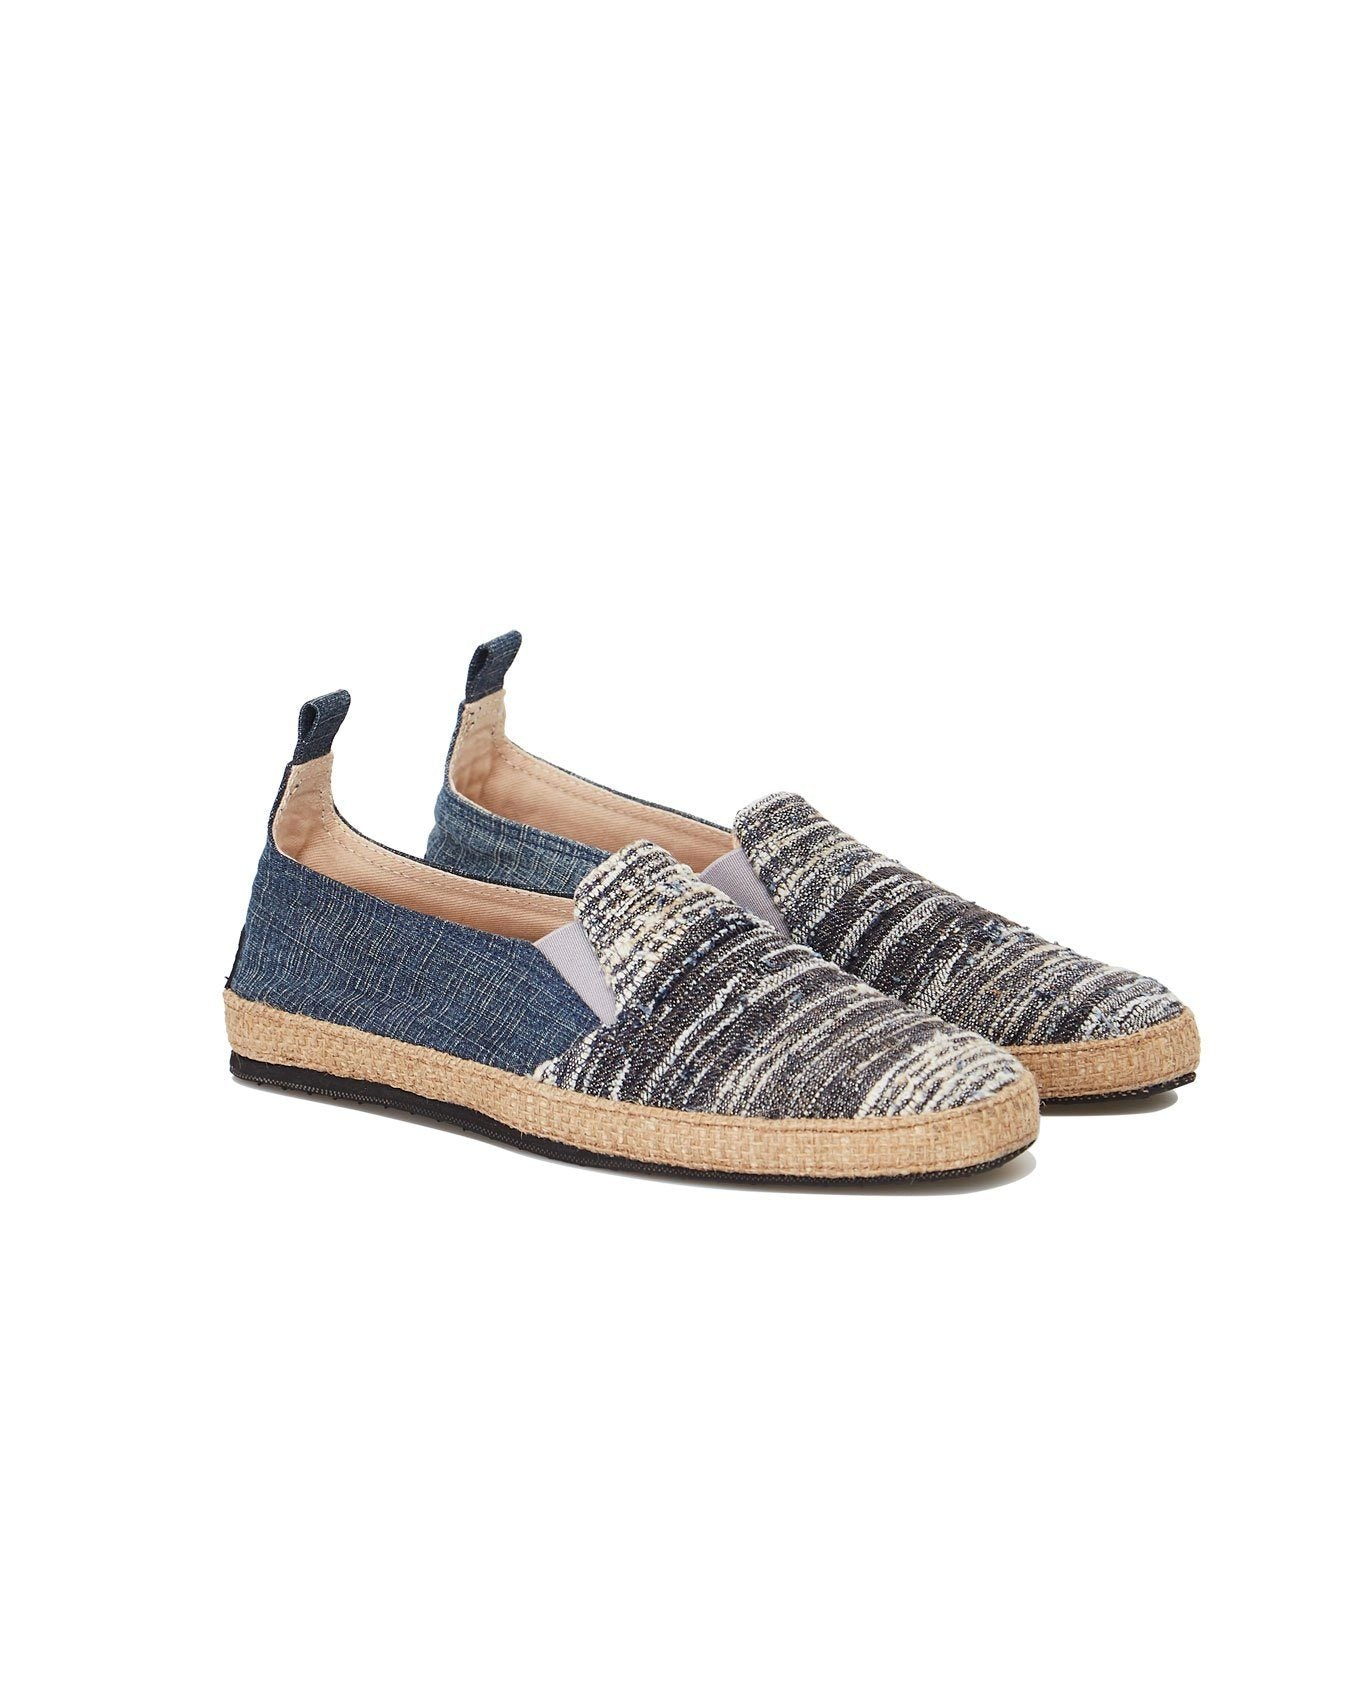 Shoes - KUNG FU Mens Shoe  Indigo